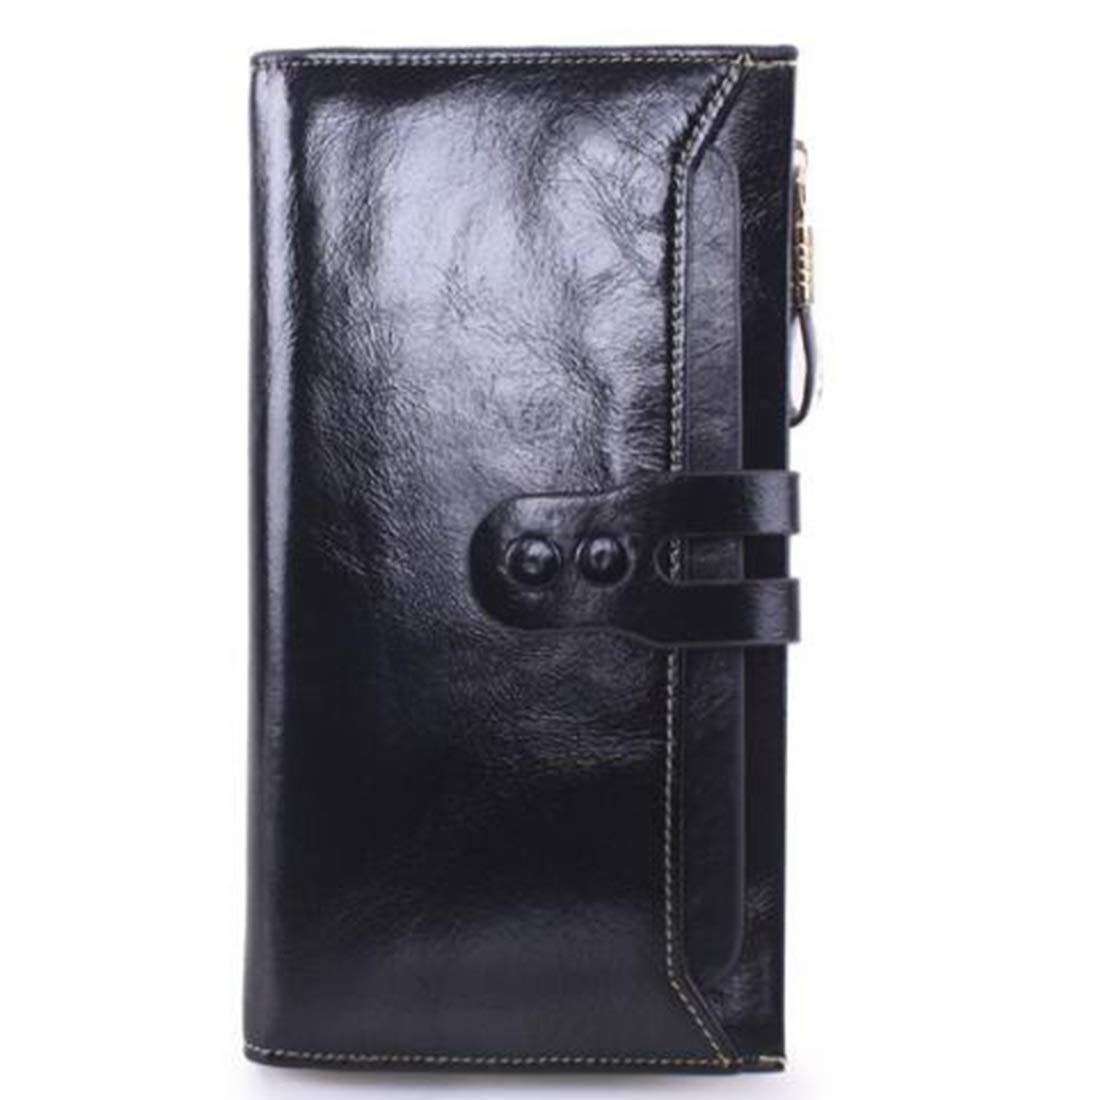 Professional Bag Long Wallet Unisex Zipper Wallet Fashion Large Capacity Folding Wallet Leather Cowhide Multicolor Available Select. Outdoor Travel Essentials (color   Black)